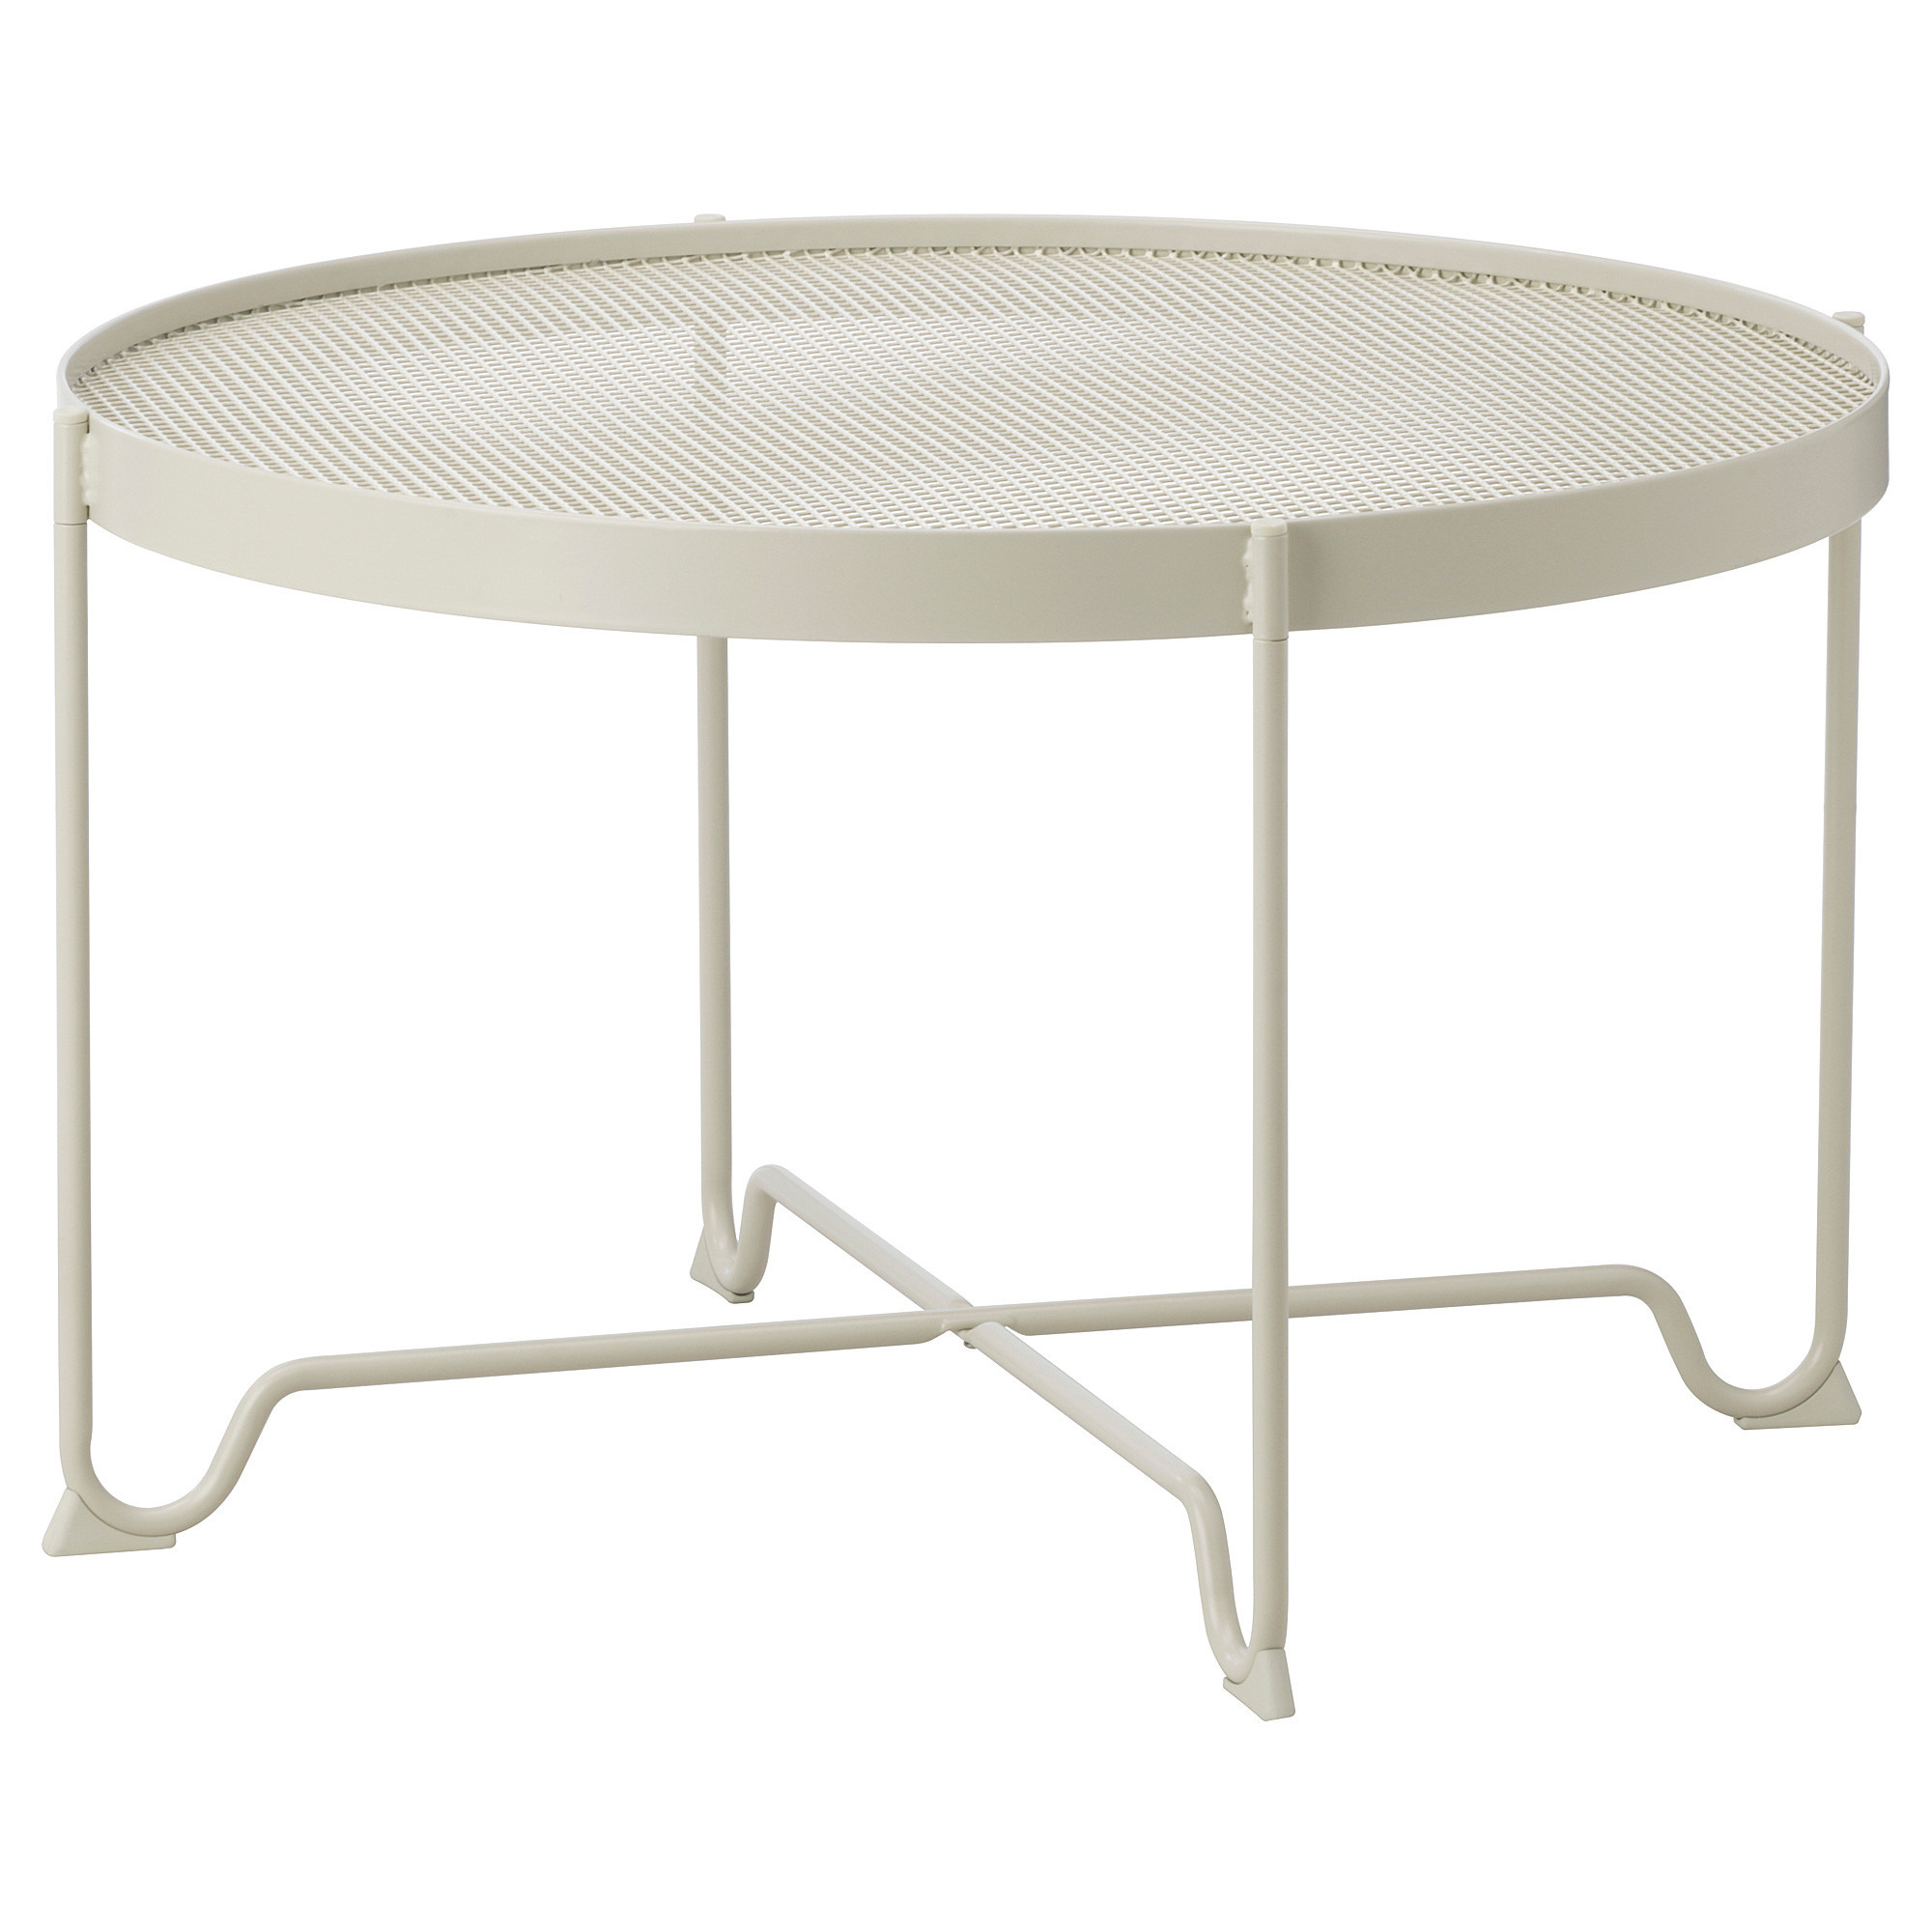 concrete and metal coffee table collections tables ideas side for bedroom unique rowan small outdoor white sliding door painted bbq nesting end ikea drum throne seat only patio